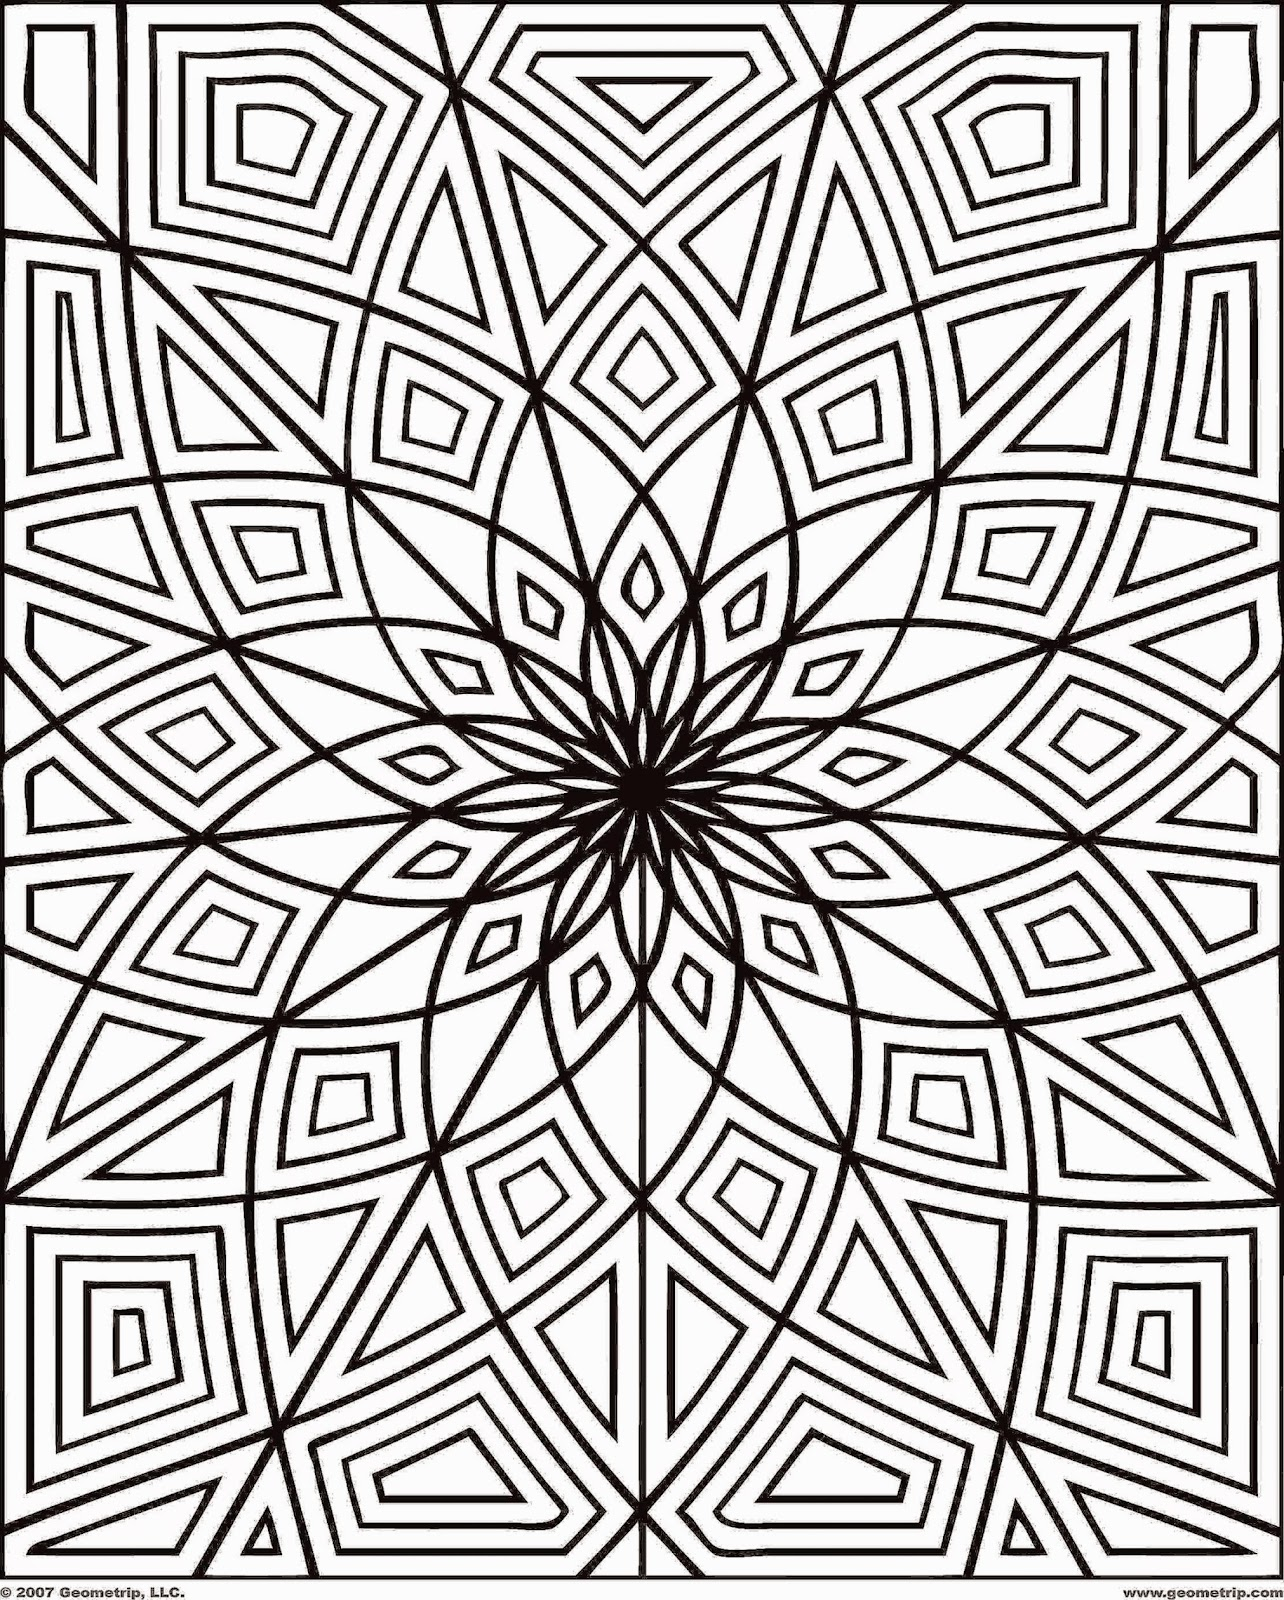 Printable Coloring Pages For Adults Free Coloring Sheet Free Printable Coloring Pages Adults